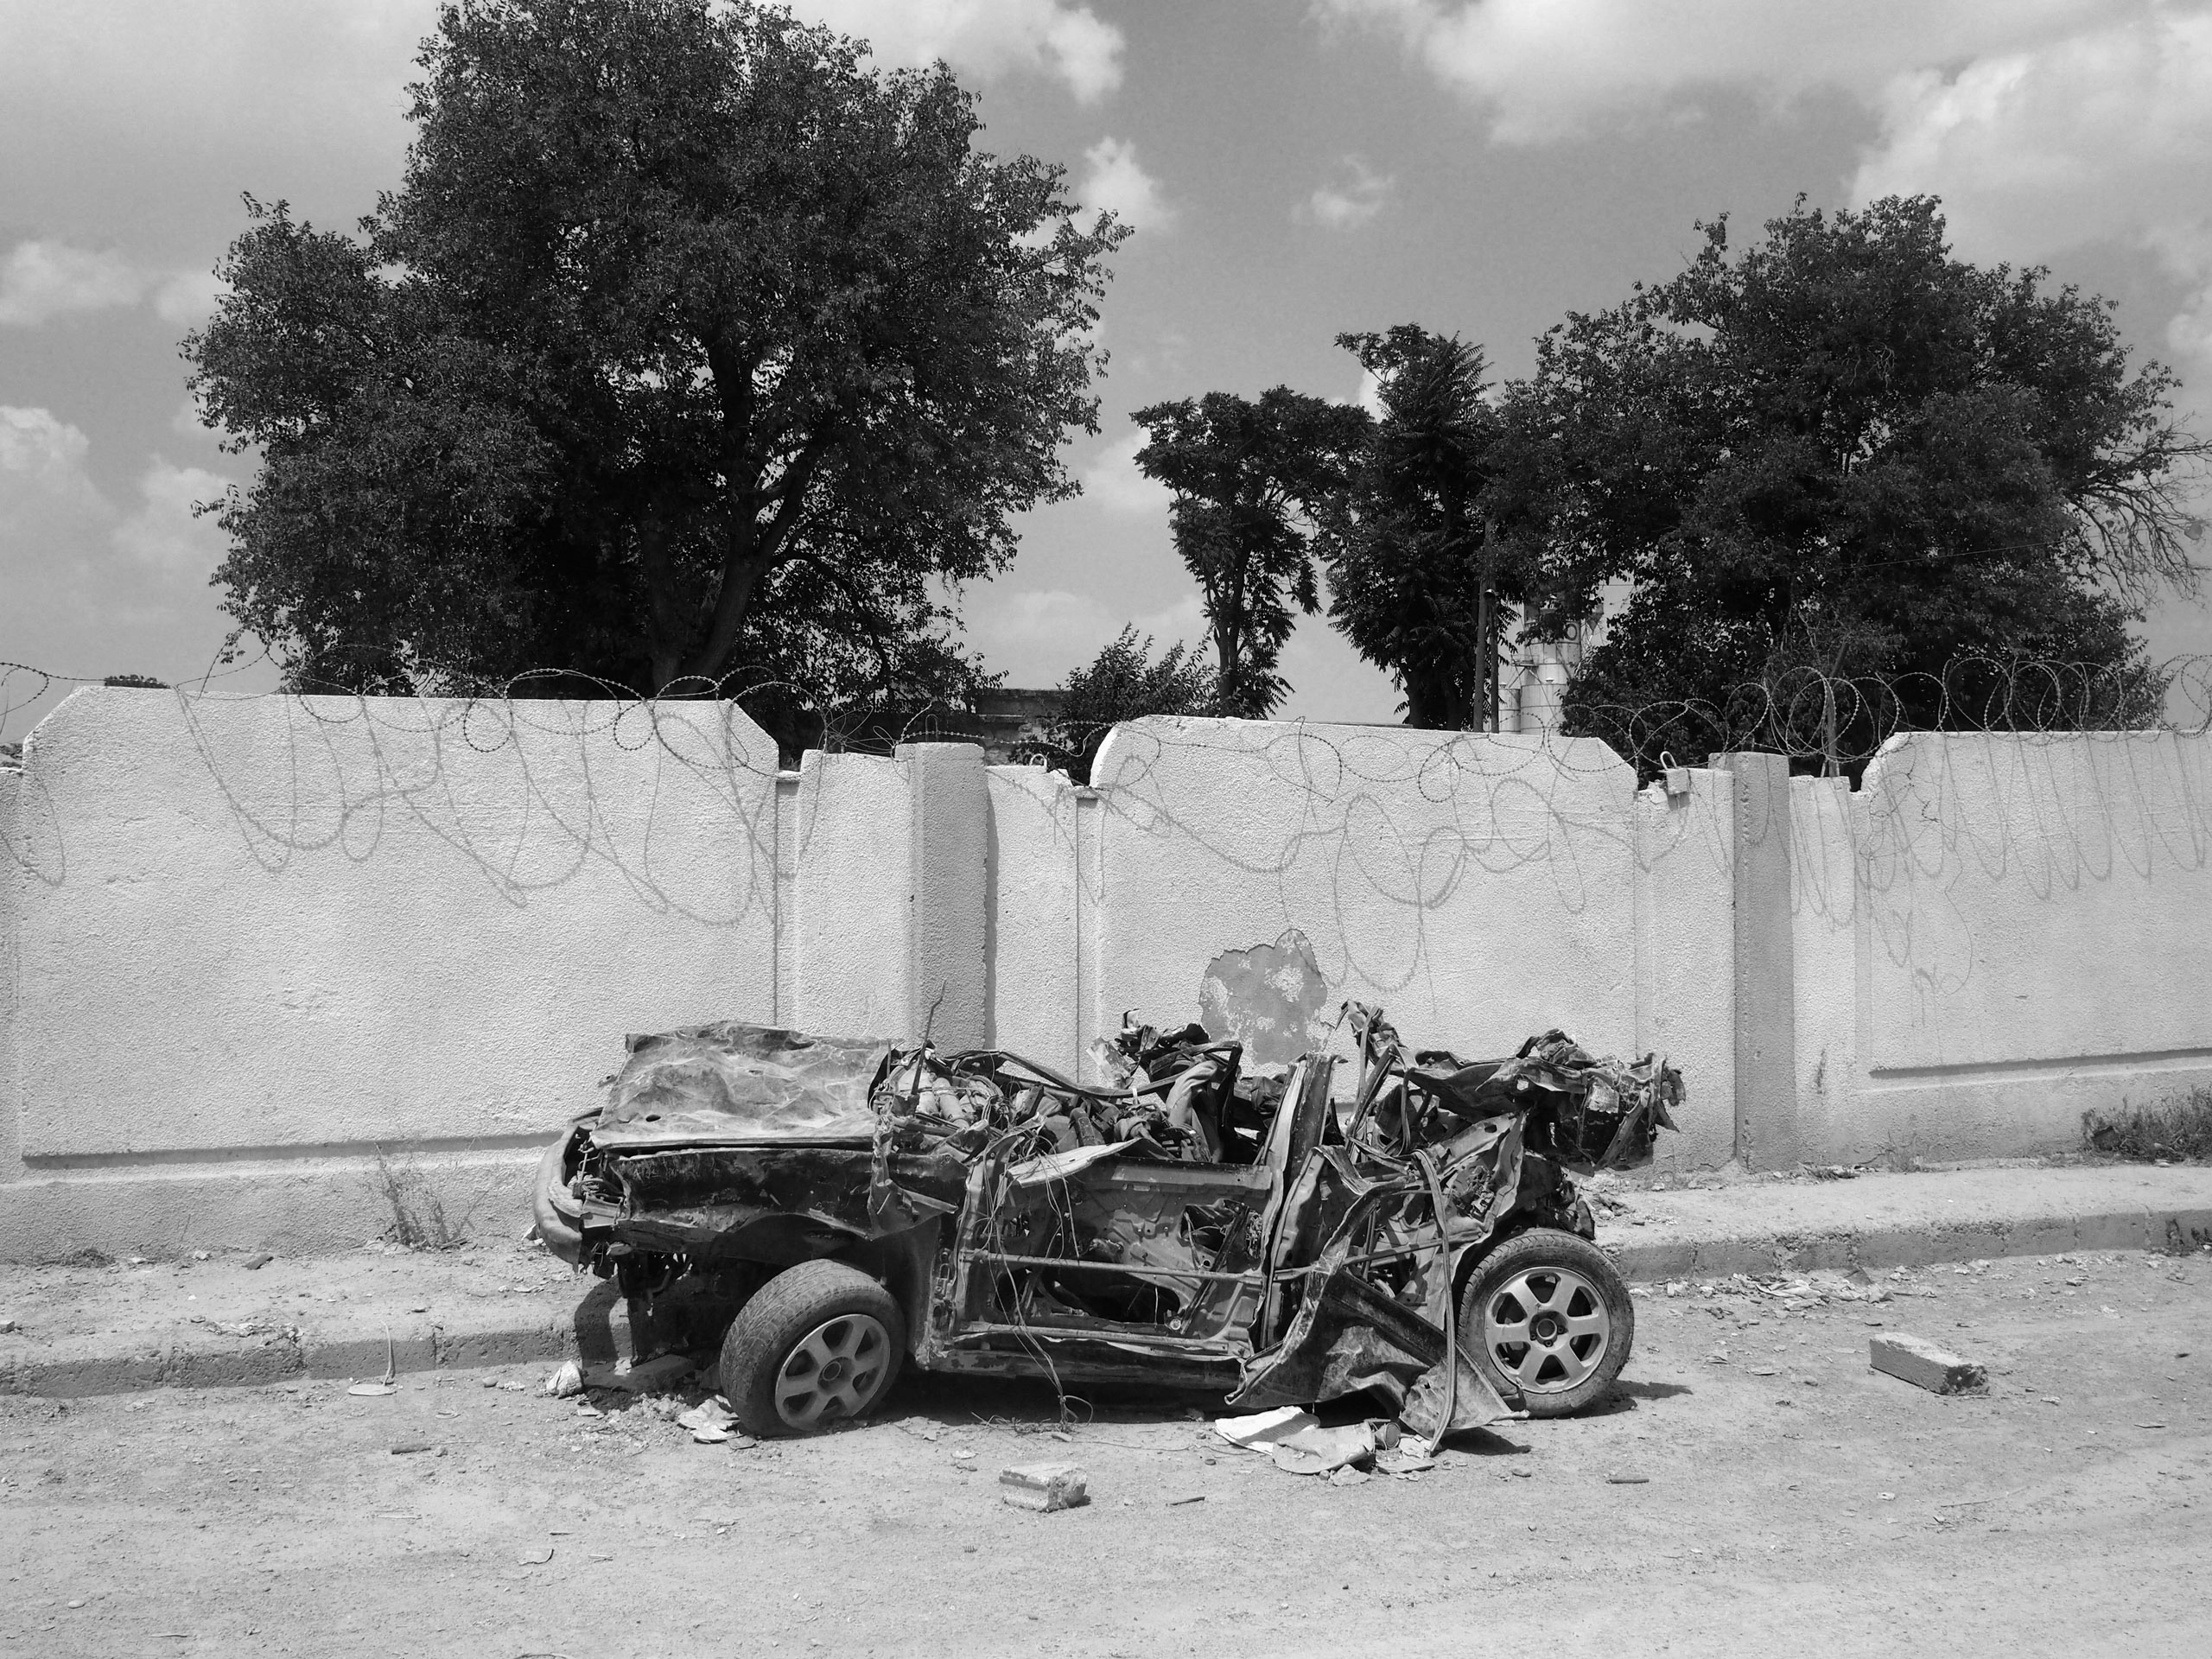 A car damaged during the fighting in the Kurdish-held city of Kobani, Syria. Aug. 8, 2015.